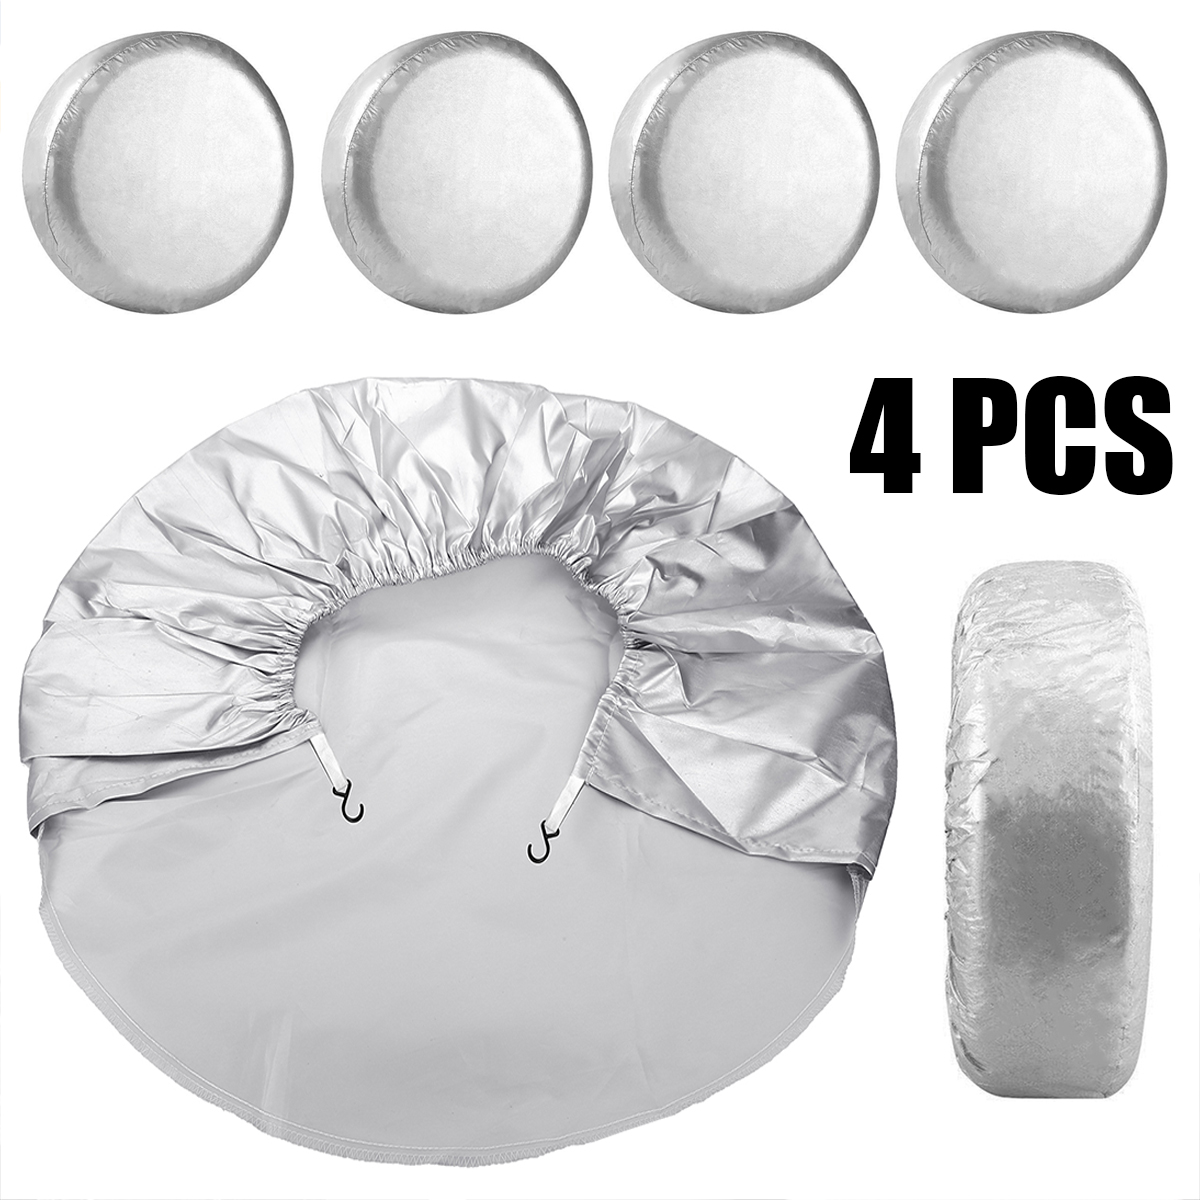 4PCS Waterproof Dustproof Car Wheel Tire Cover Bag For Auto Truck Trailer RV Camper Motorhome Tyre Cover Silver